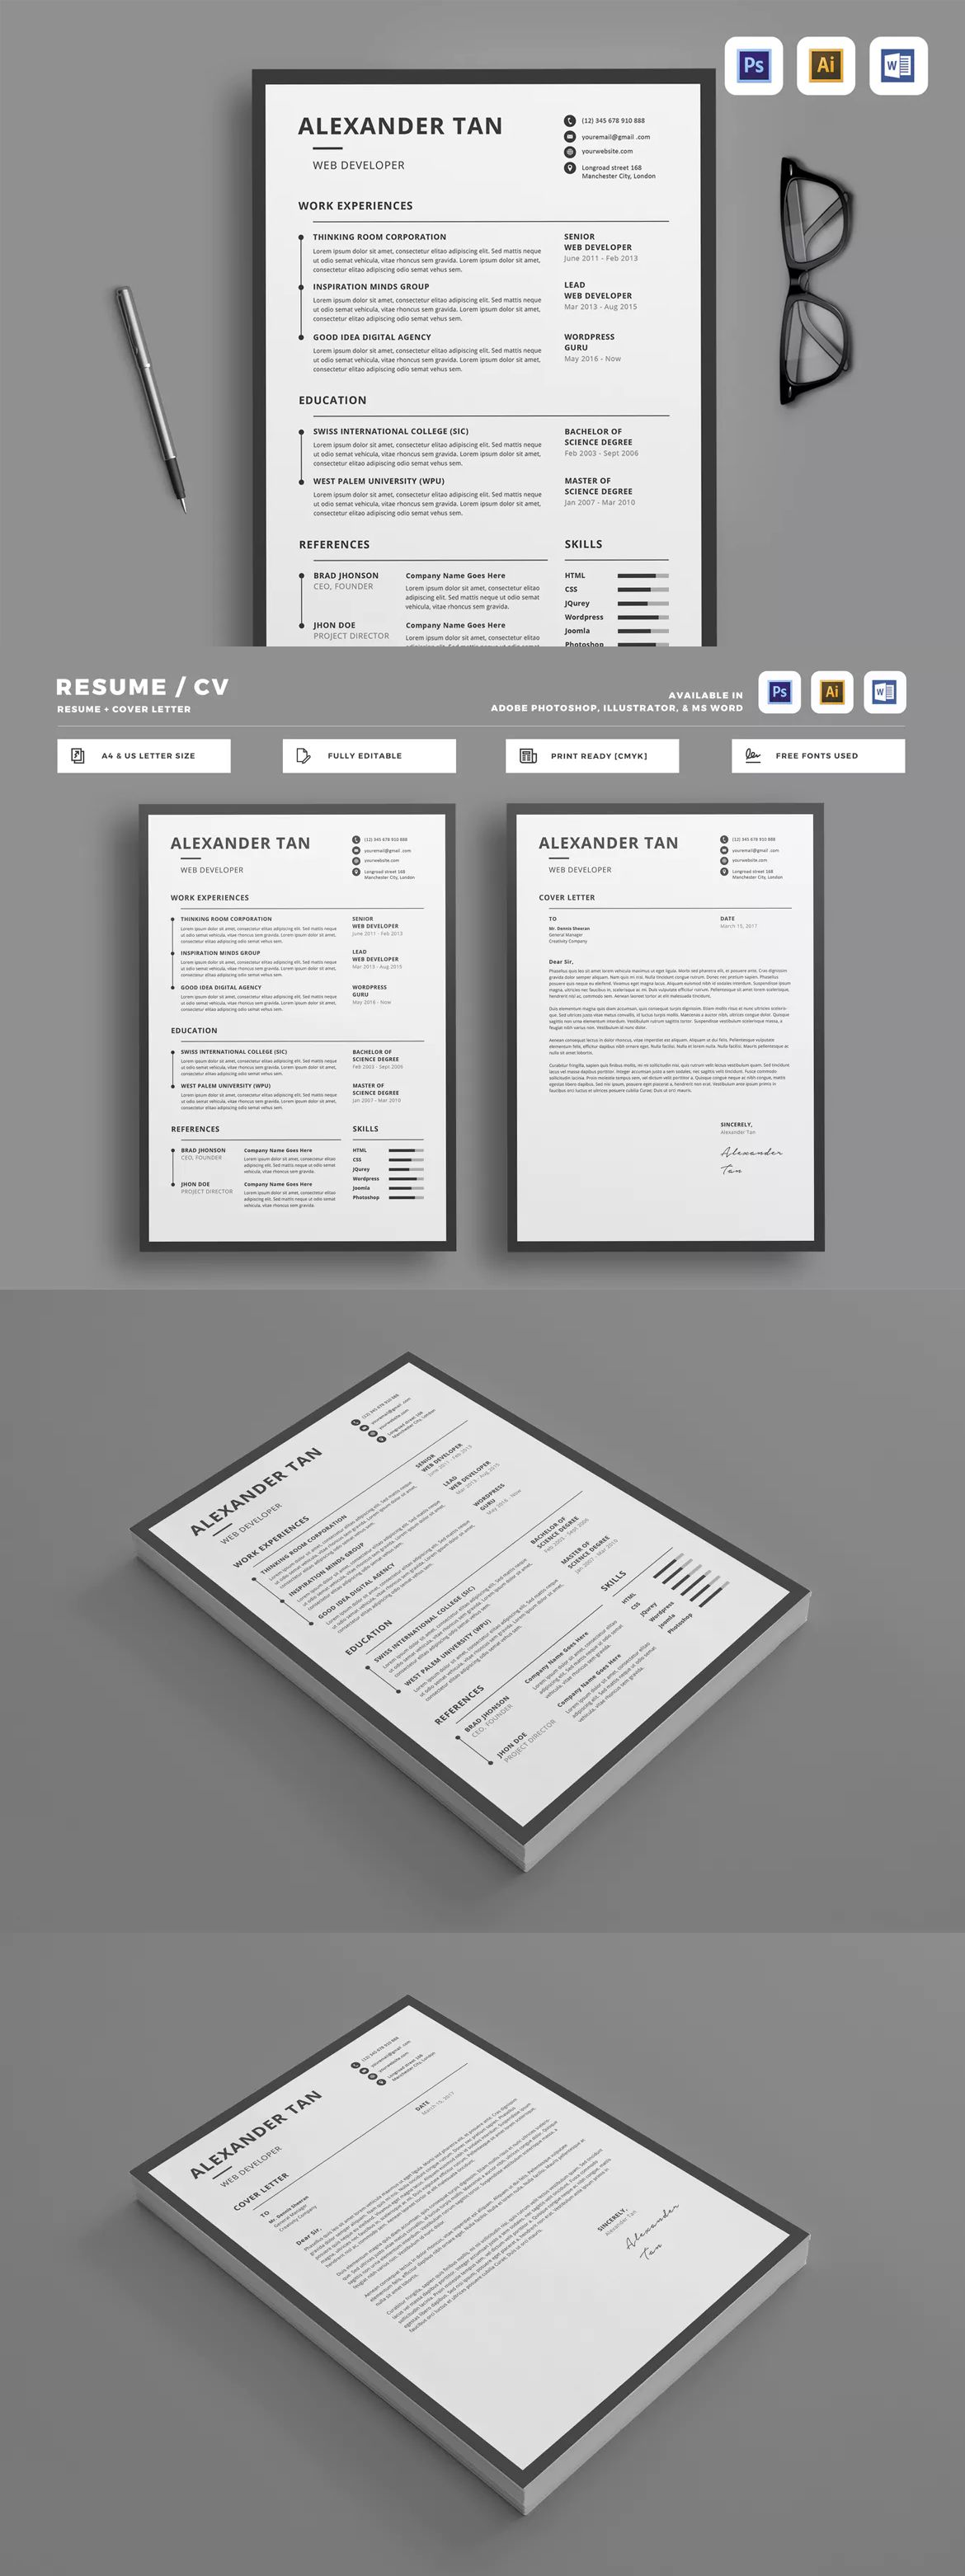 Resume Text Size Cv Template Ai Eps Psd Ms Word  A4 & Us Letter Size  Resume .